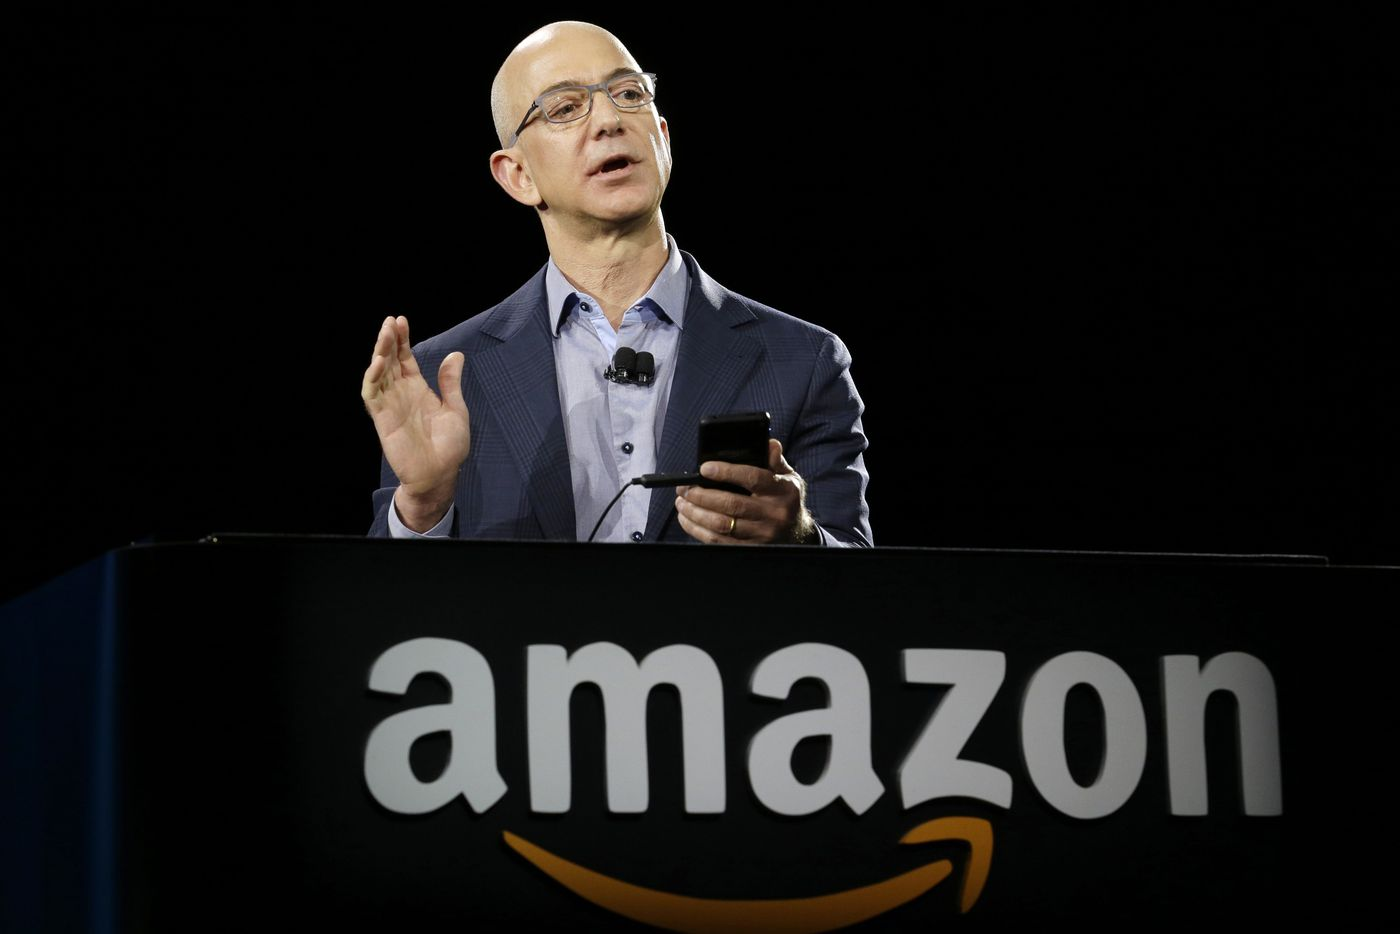 Amazon employees demand company cut ties with ICE